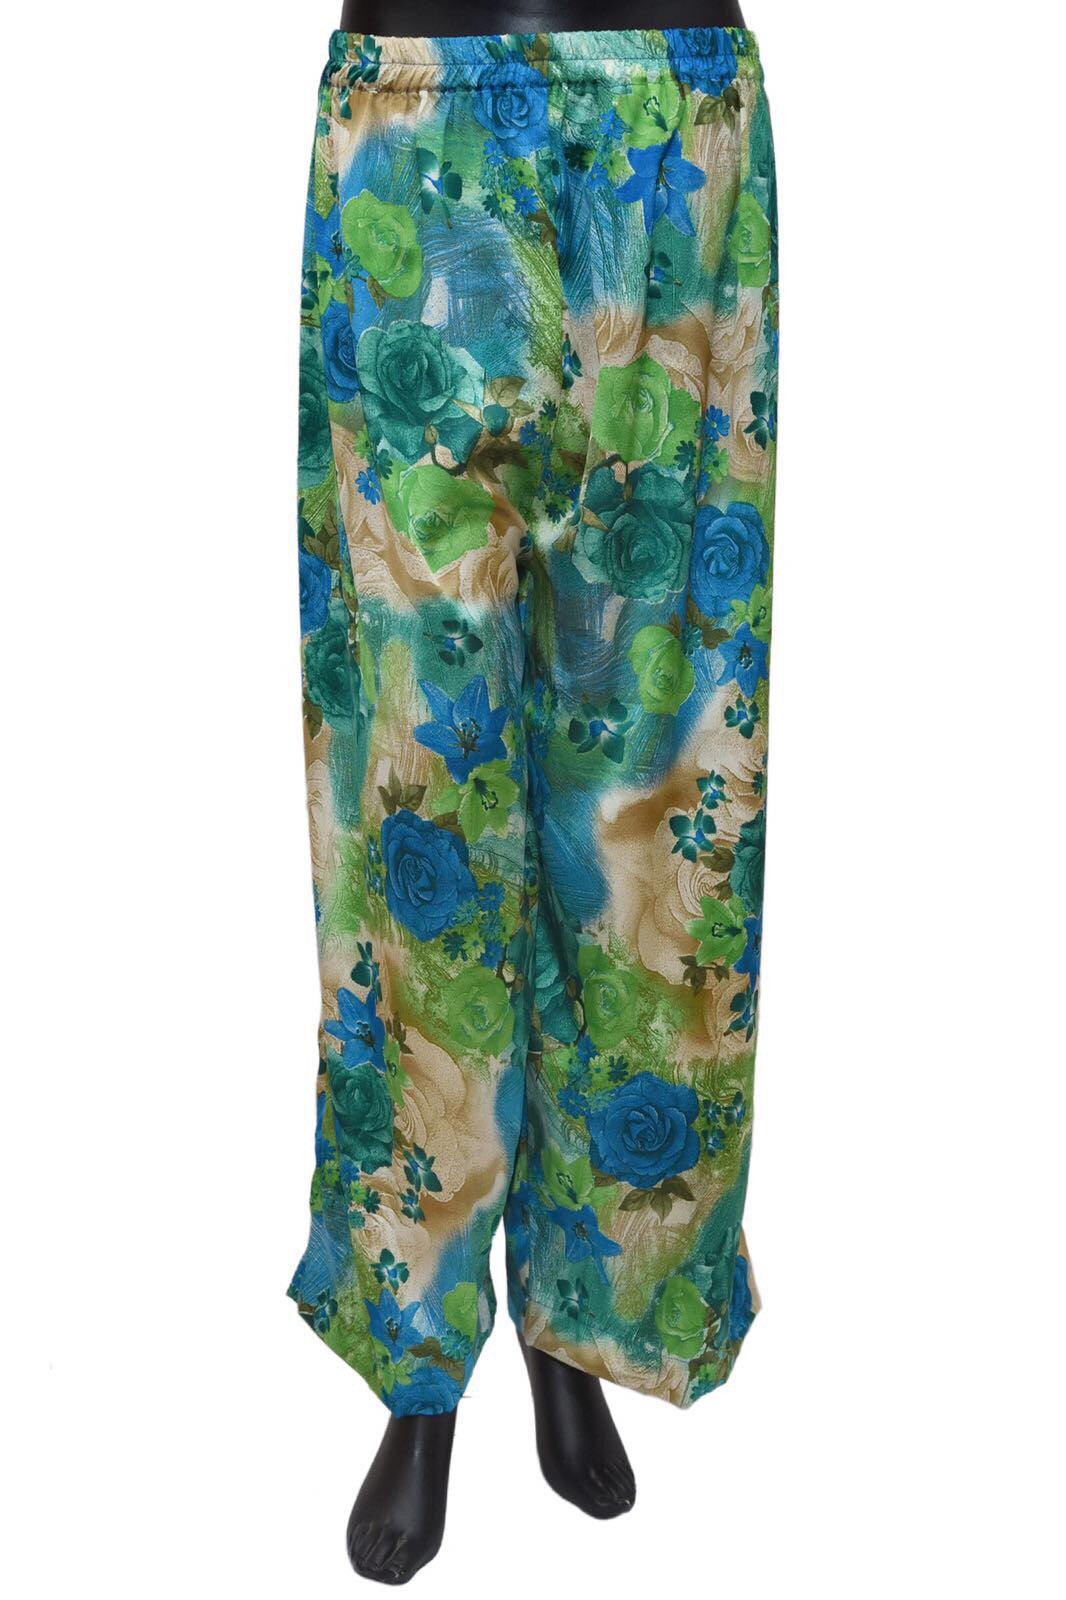 A green and beige color palazzo pants #fdn0473 / 6